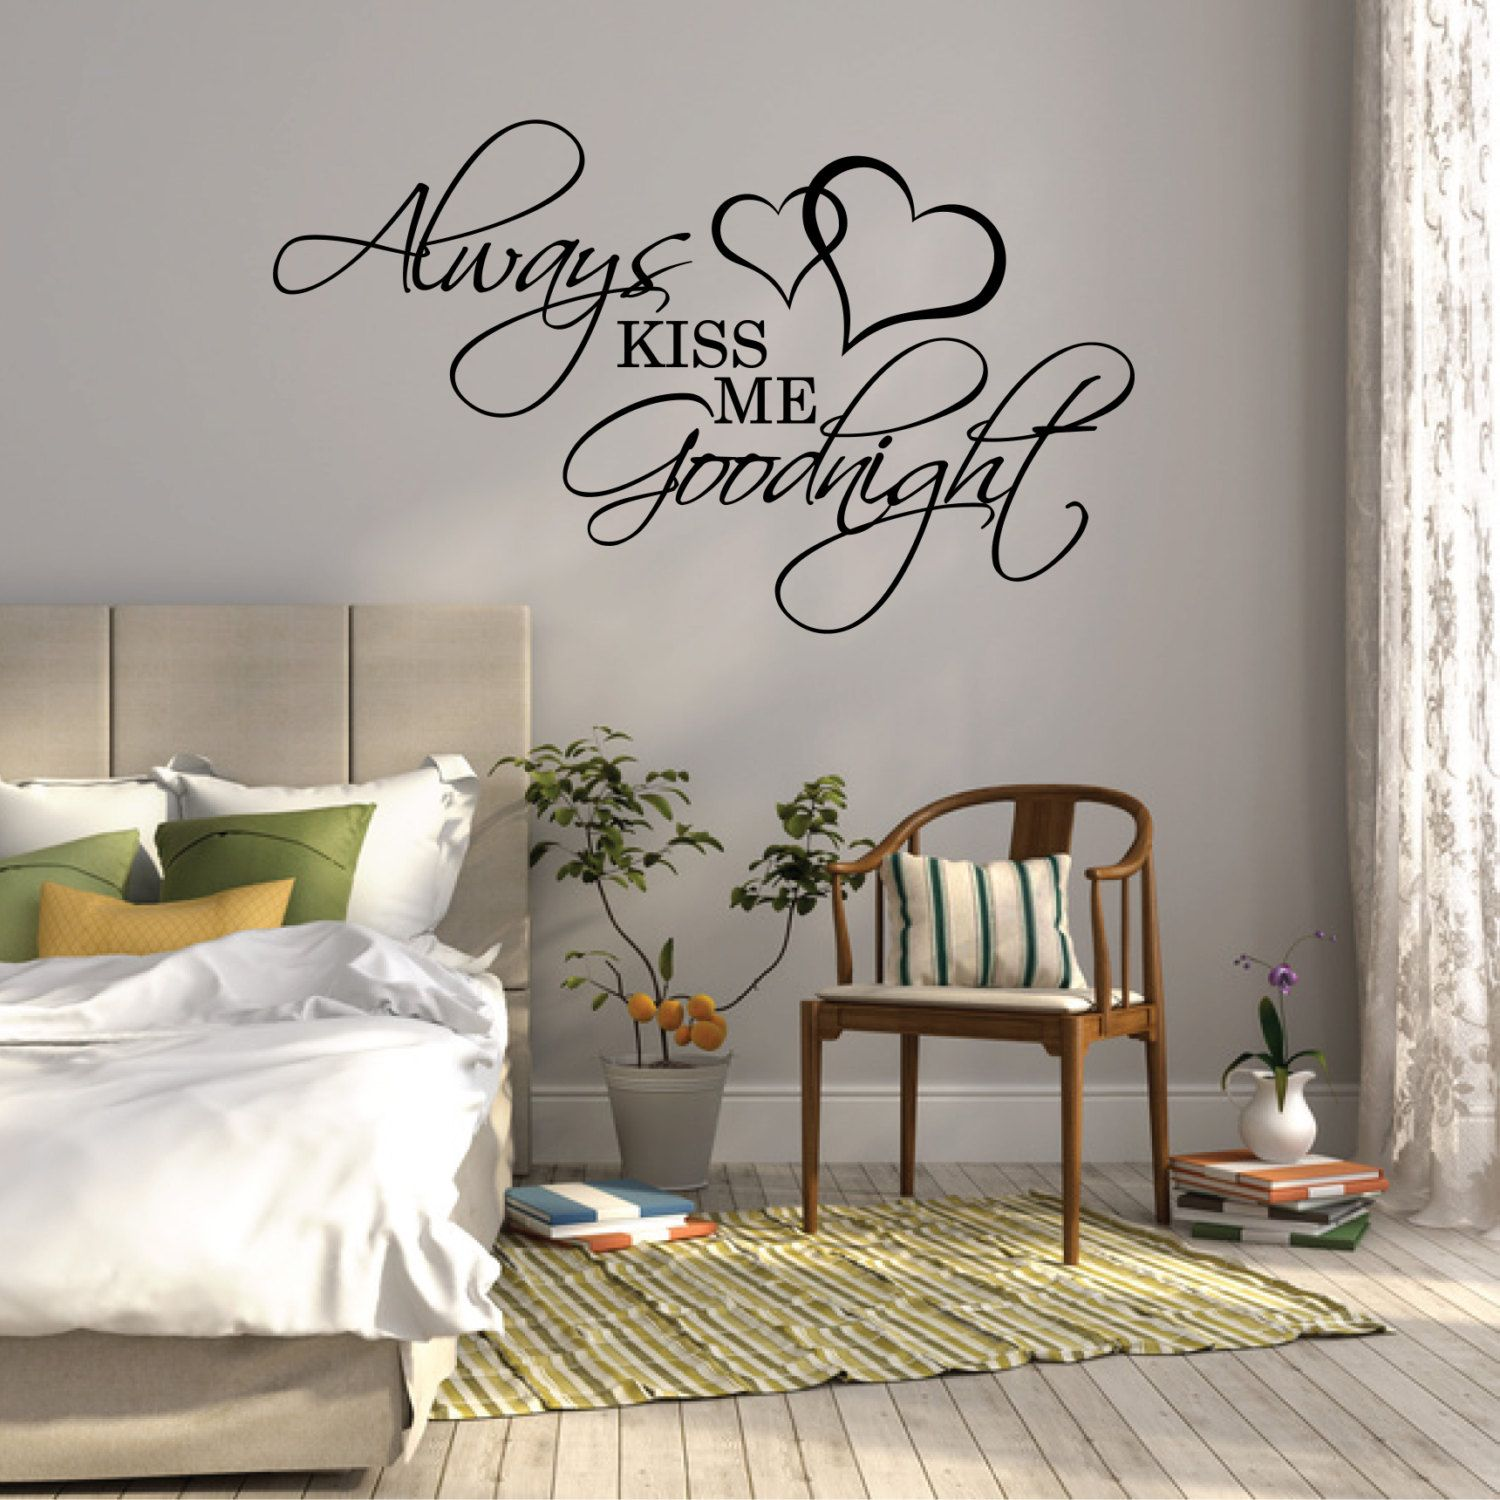 Wall sticker quote always kiss me goodnight over bed for Home decor bedroom